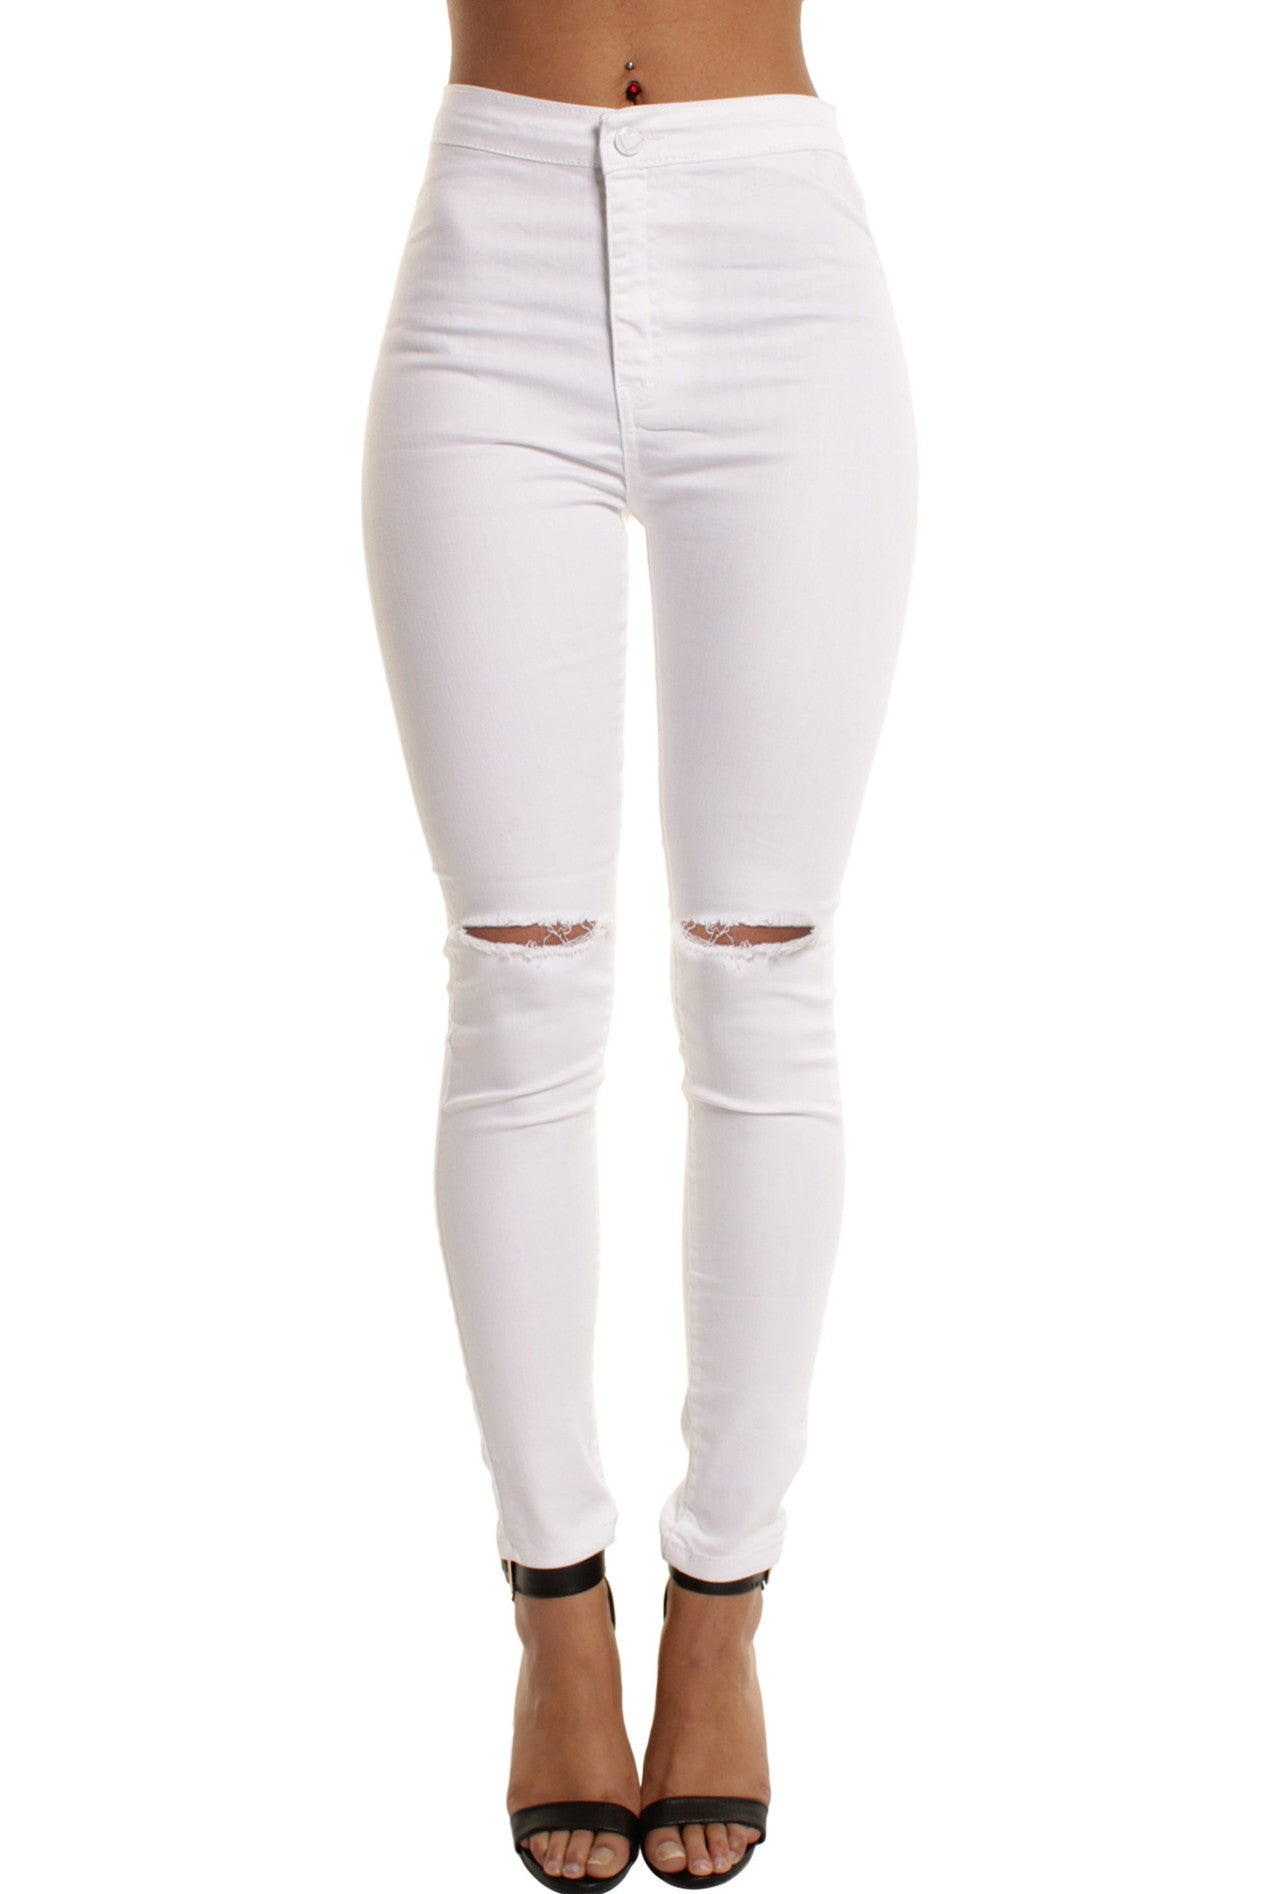 High Waisted Ripped White Jeans - Jon Jean